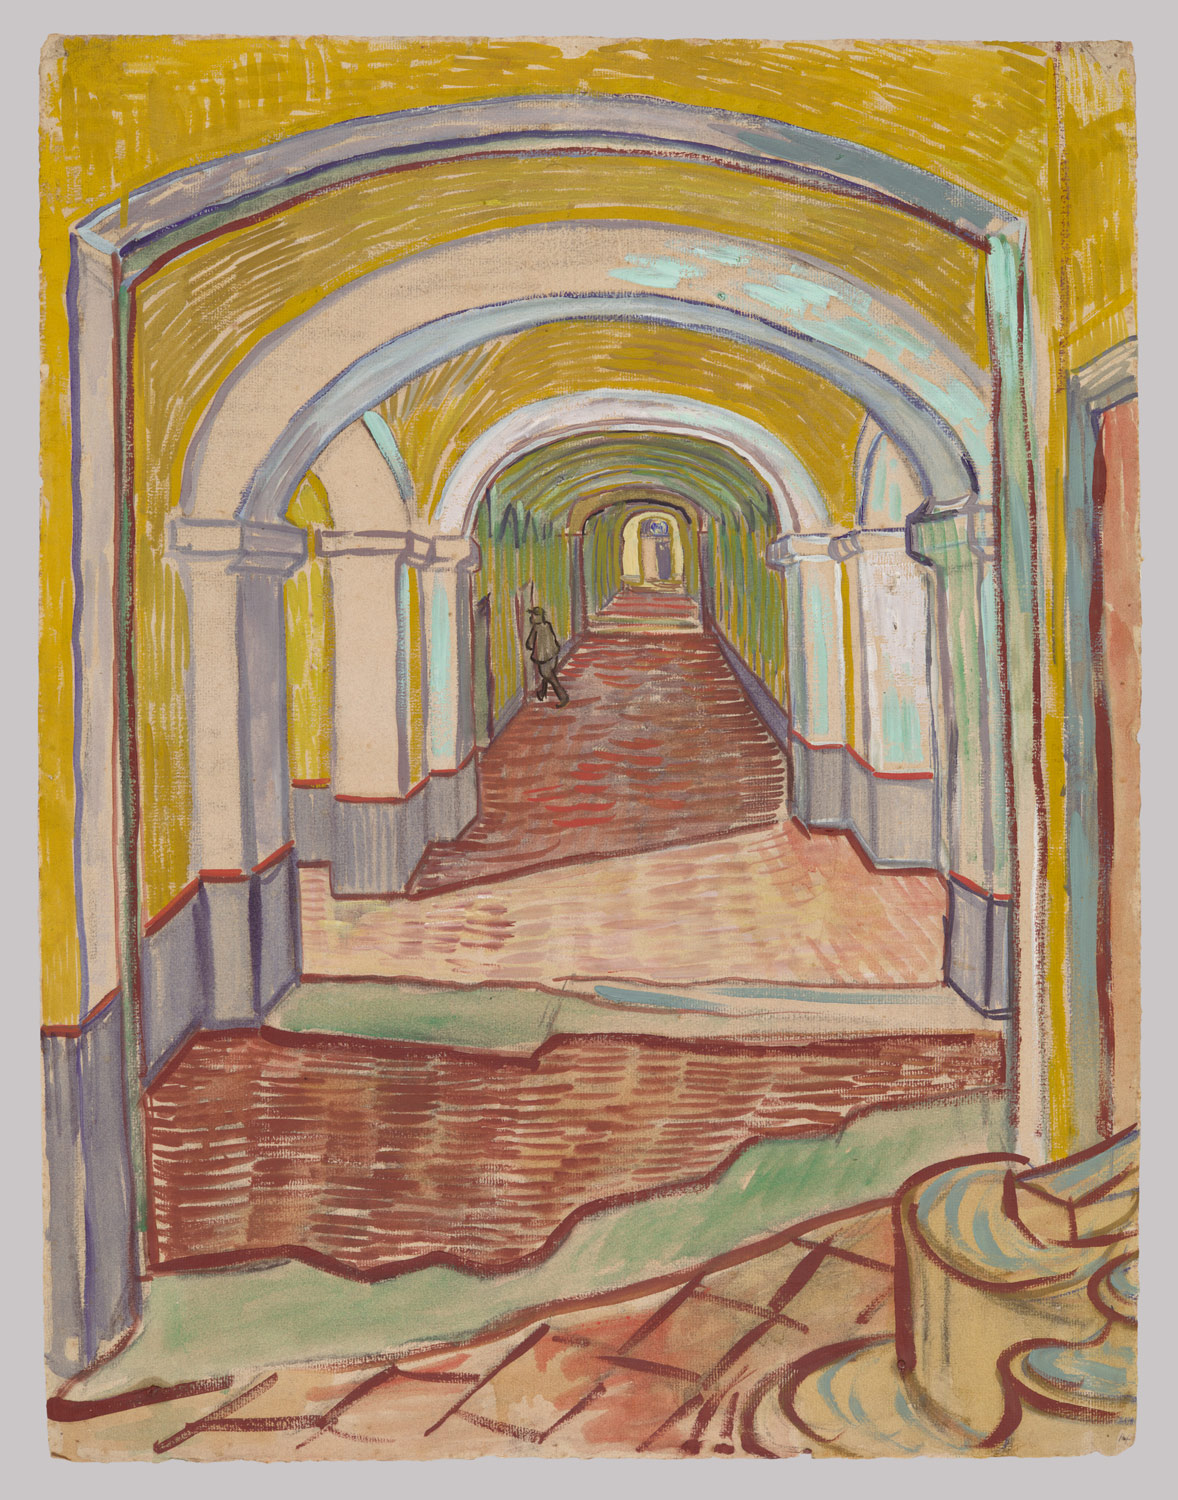 vincent van gogh 1853 1890 essay heilbrunn timeline of art corridor in the asylum